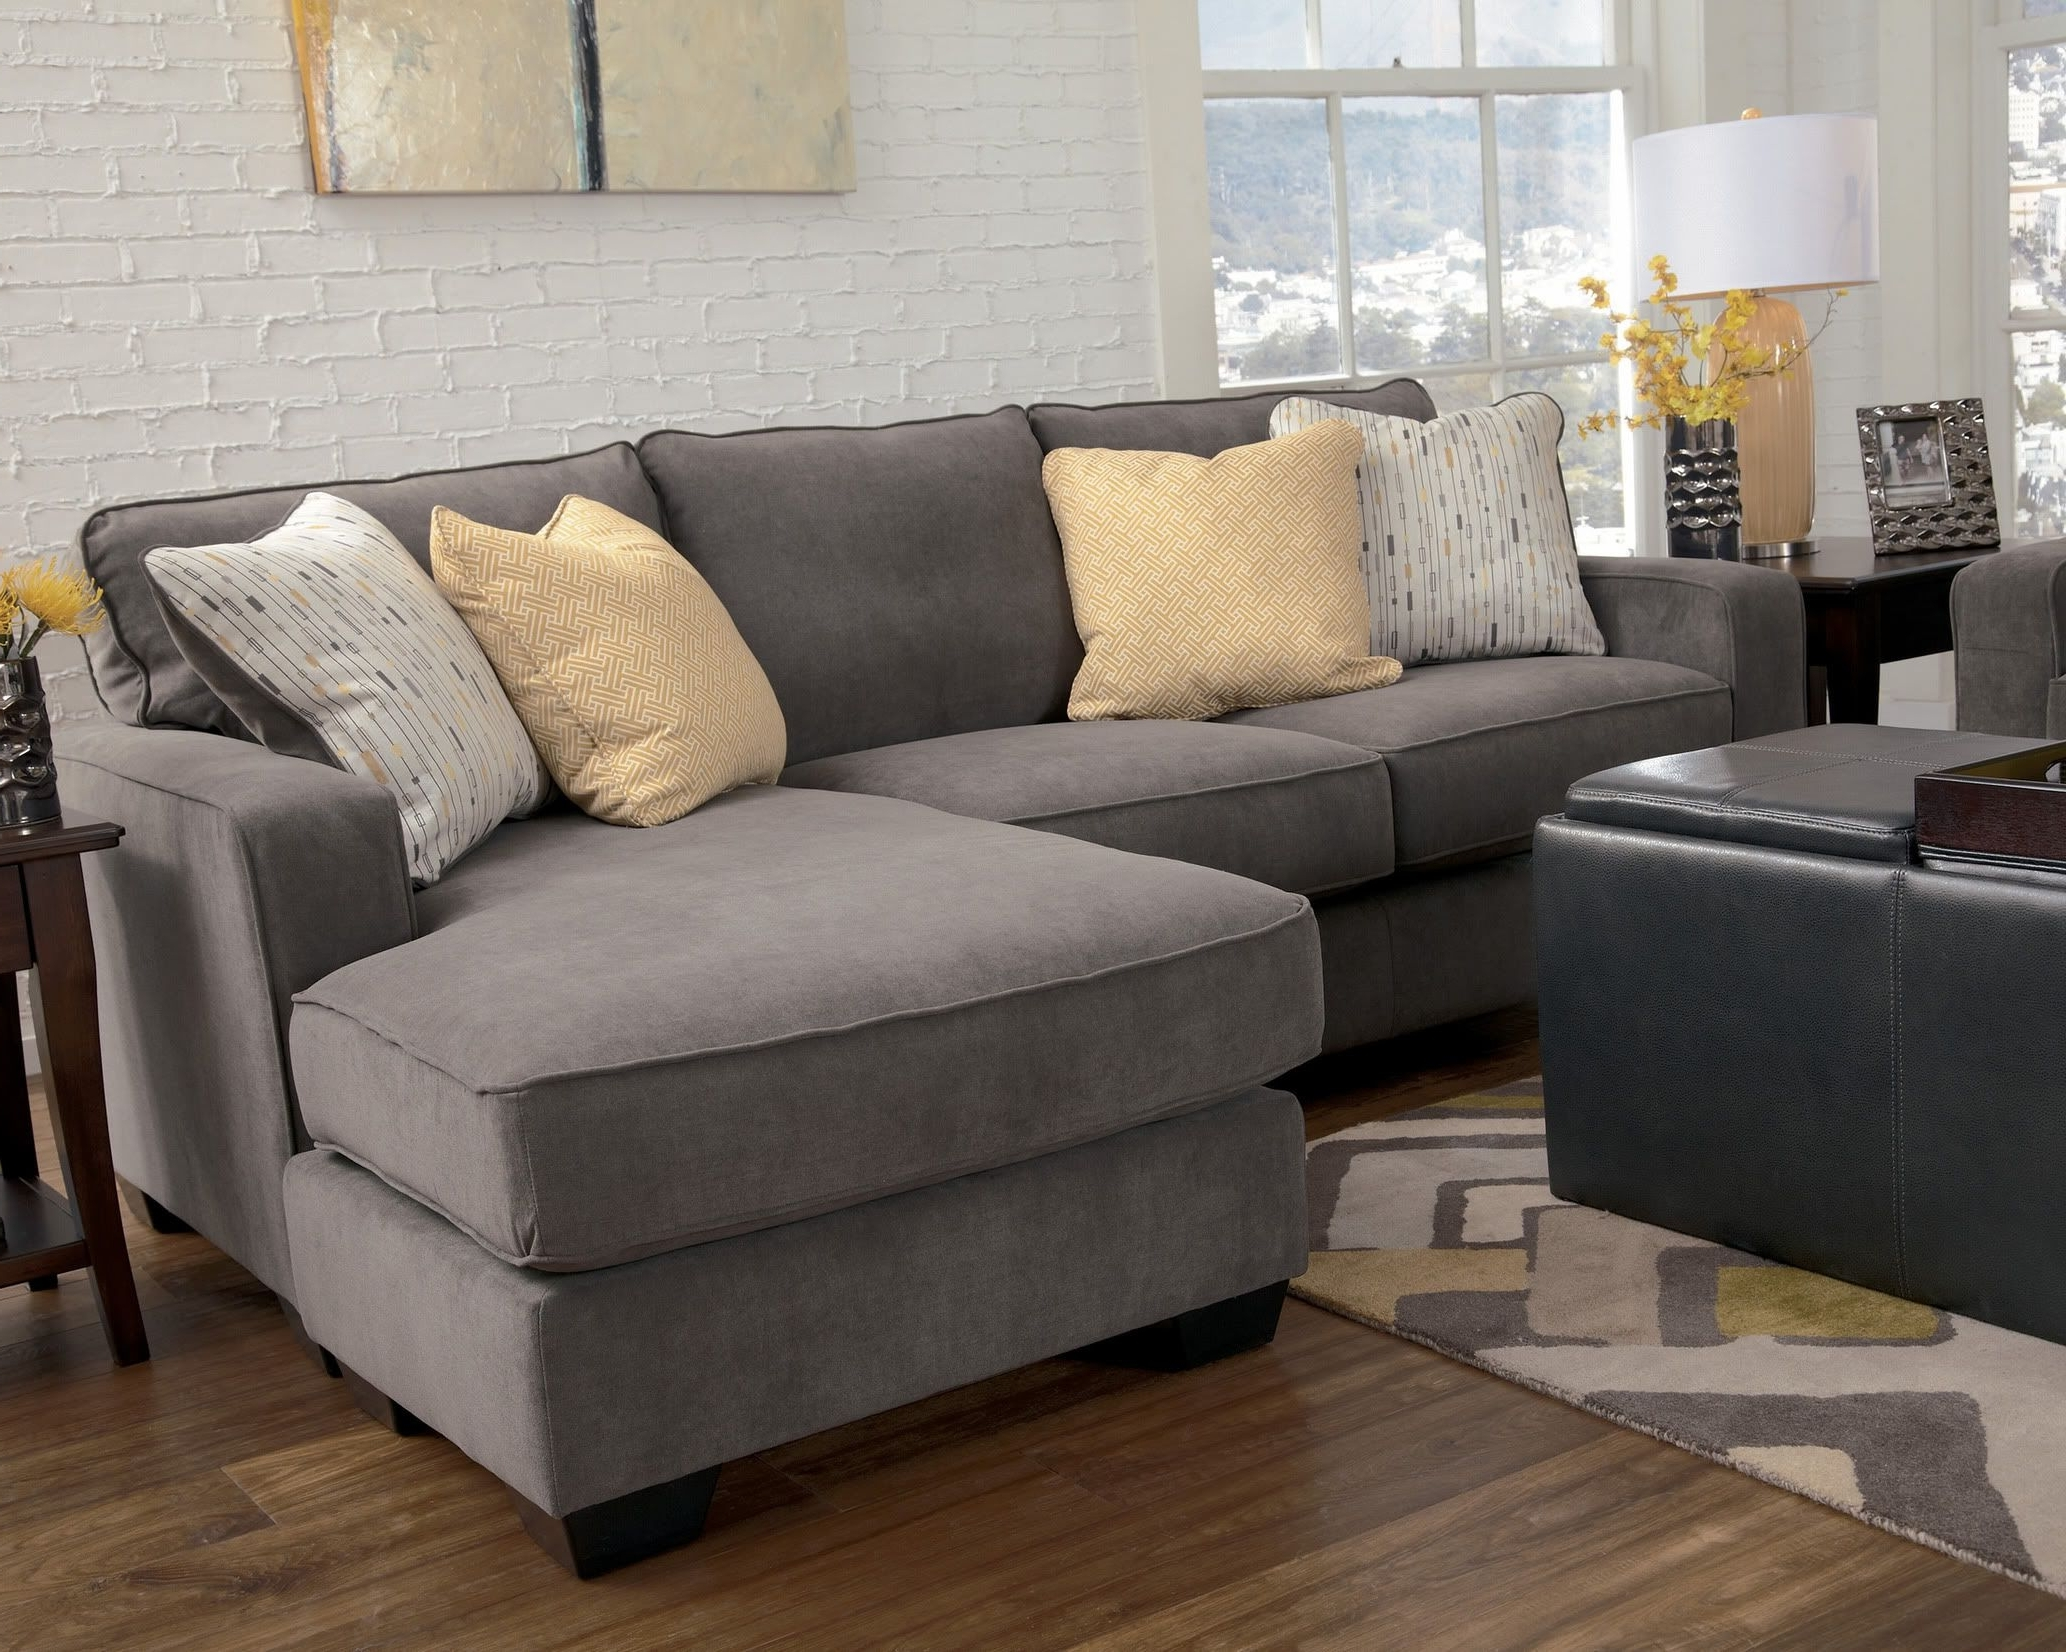 Marble Contemporary Sofa Chaise Living Room Furniture Fabric Within Preferred Sofas With Reversible Chaise (View 6 of 15)